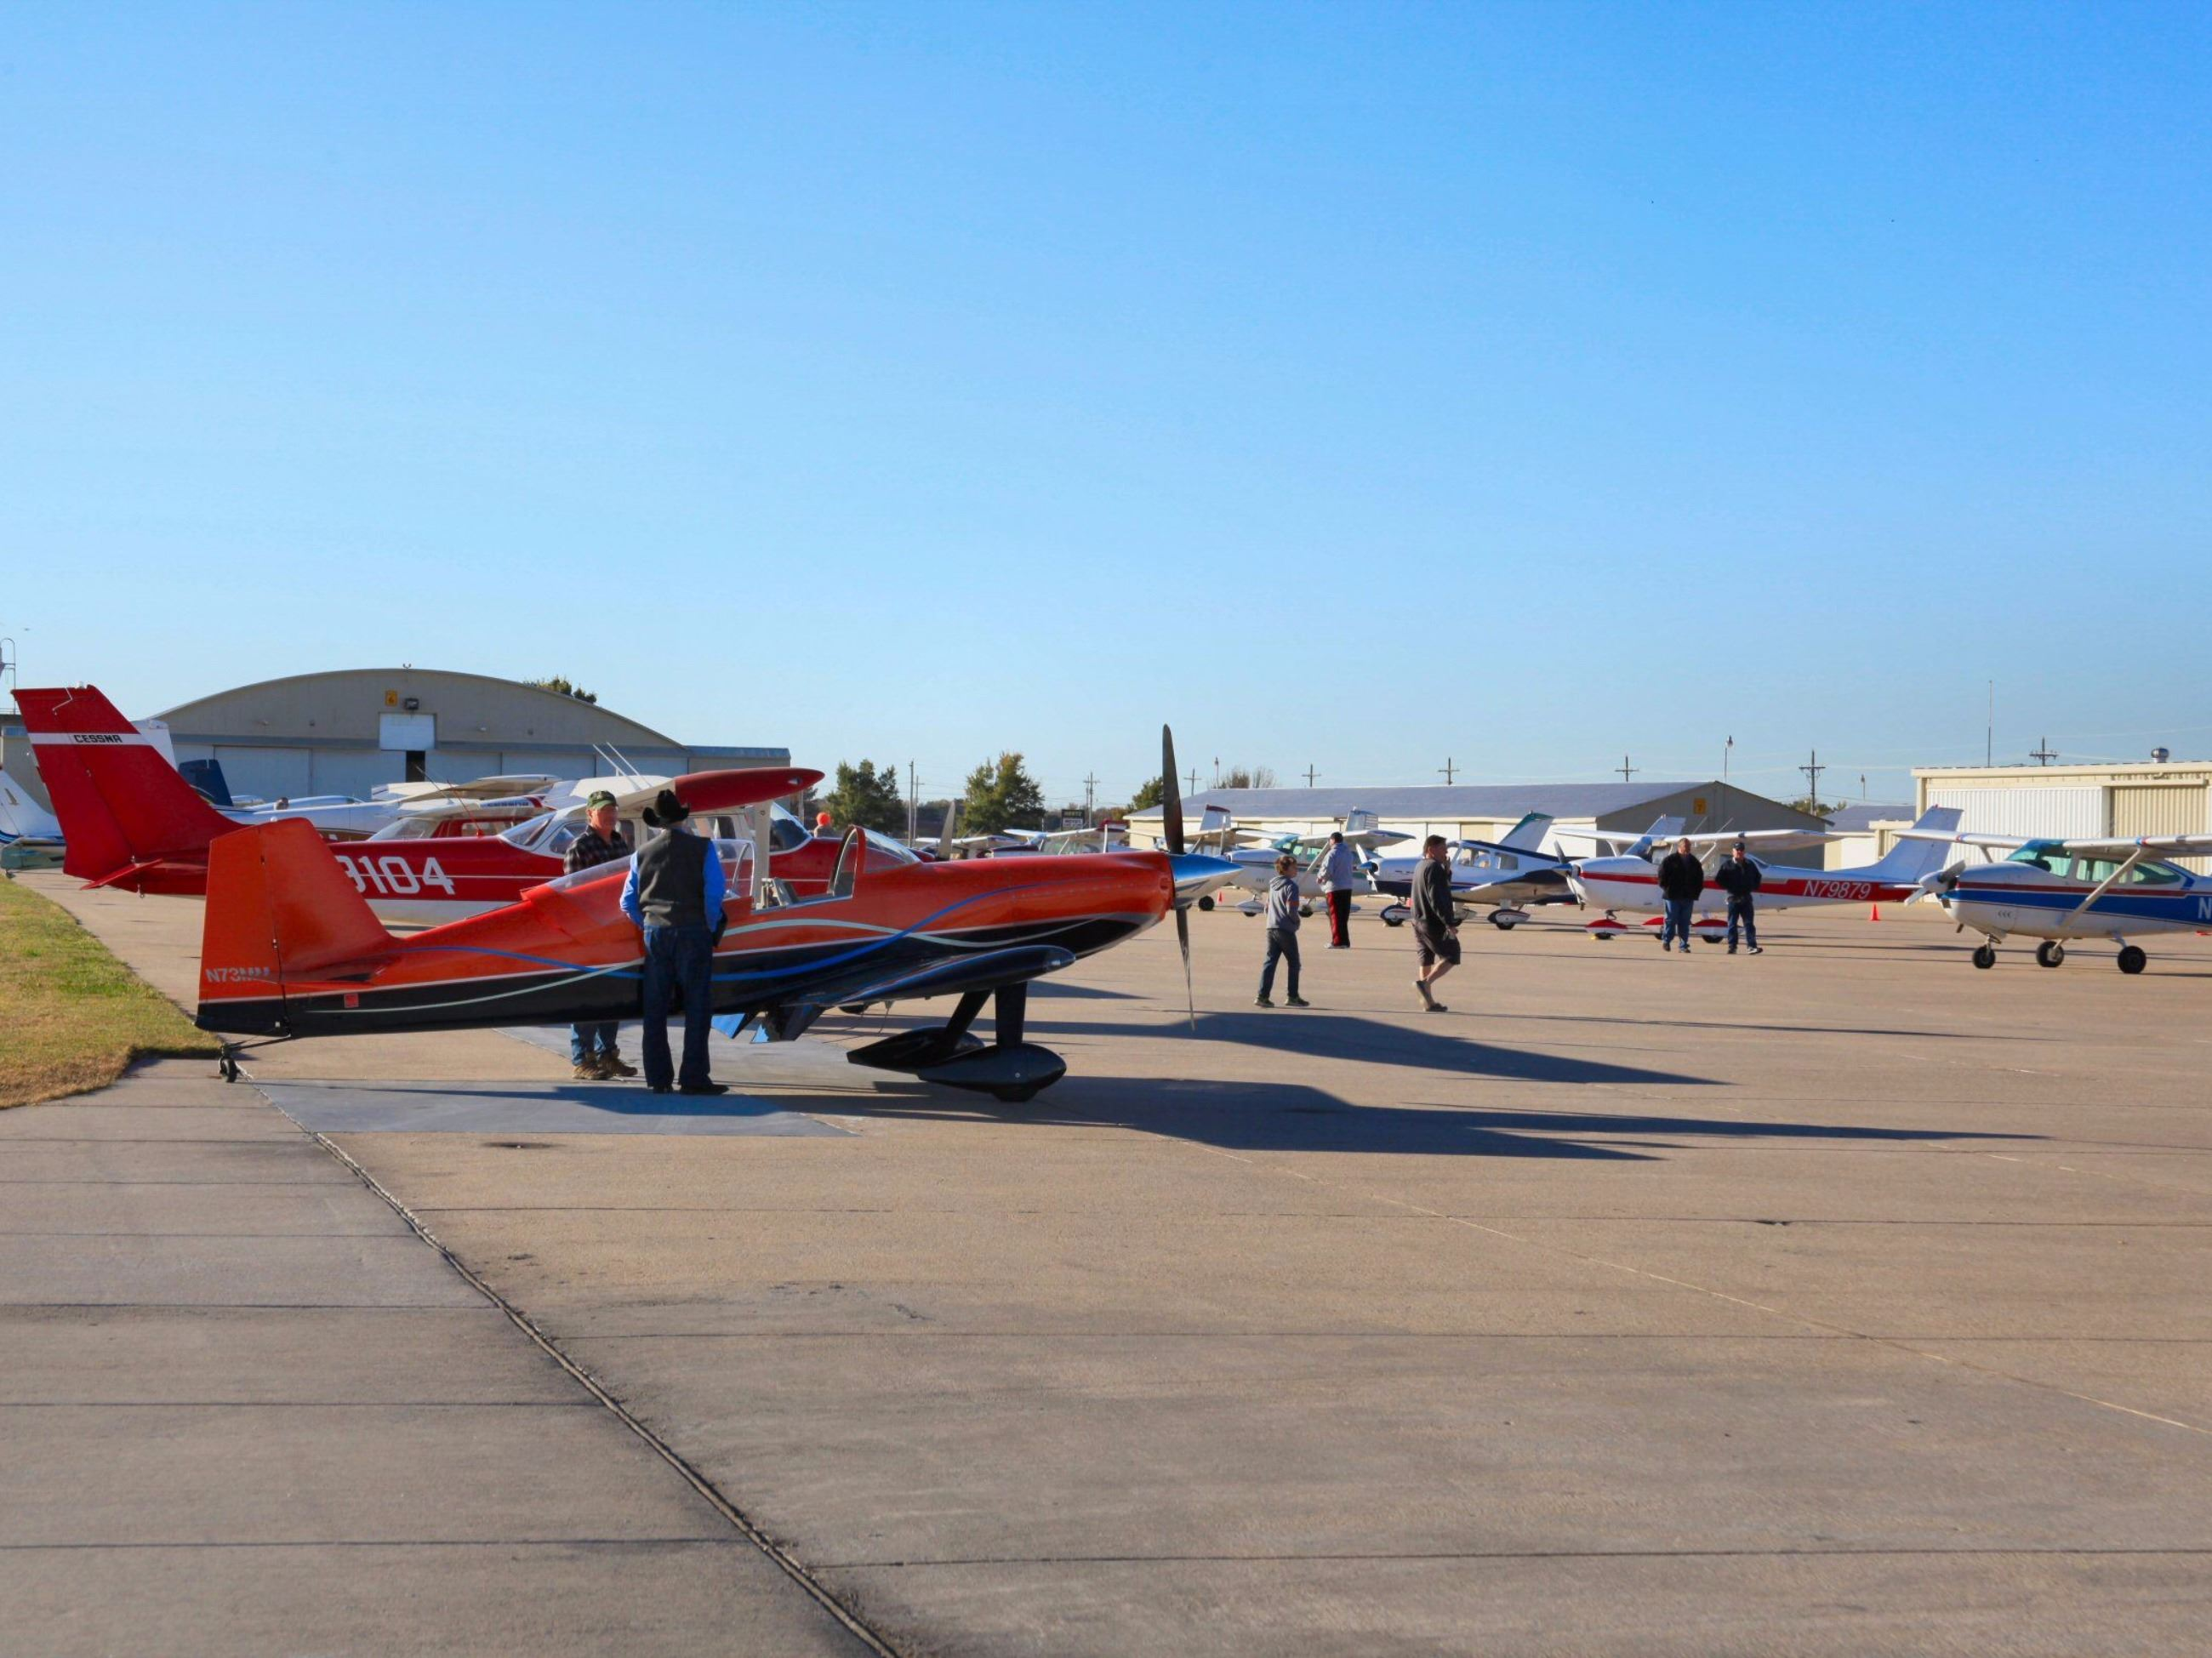 Ramp Aircraft - November 7 2015